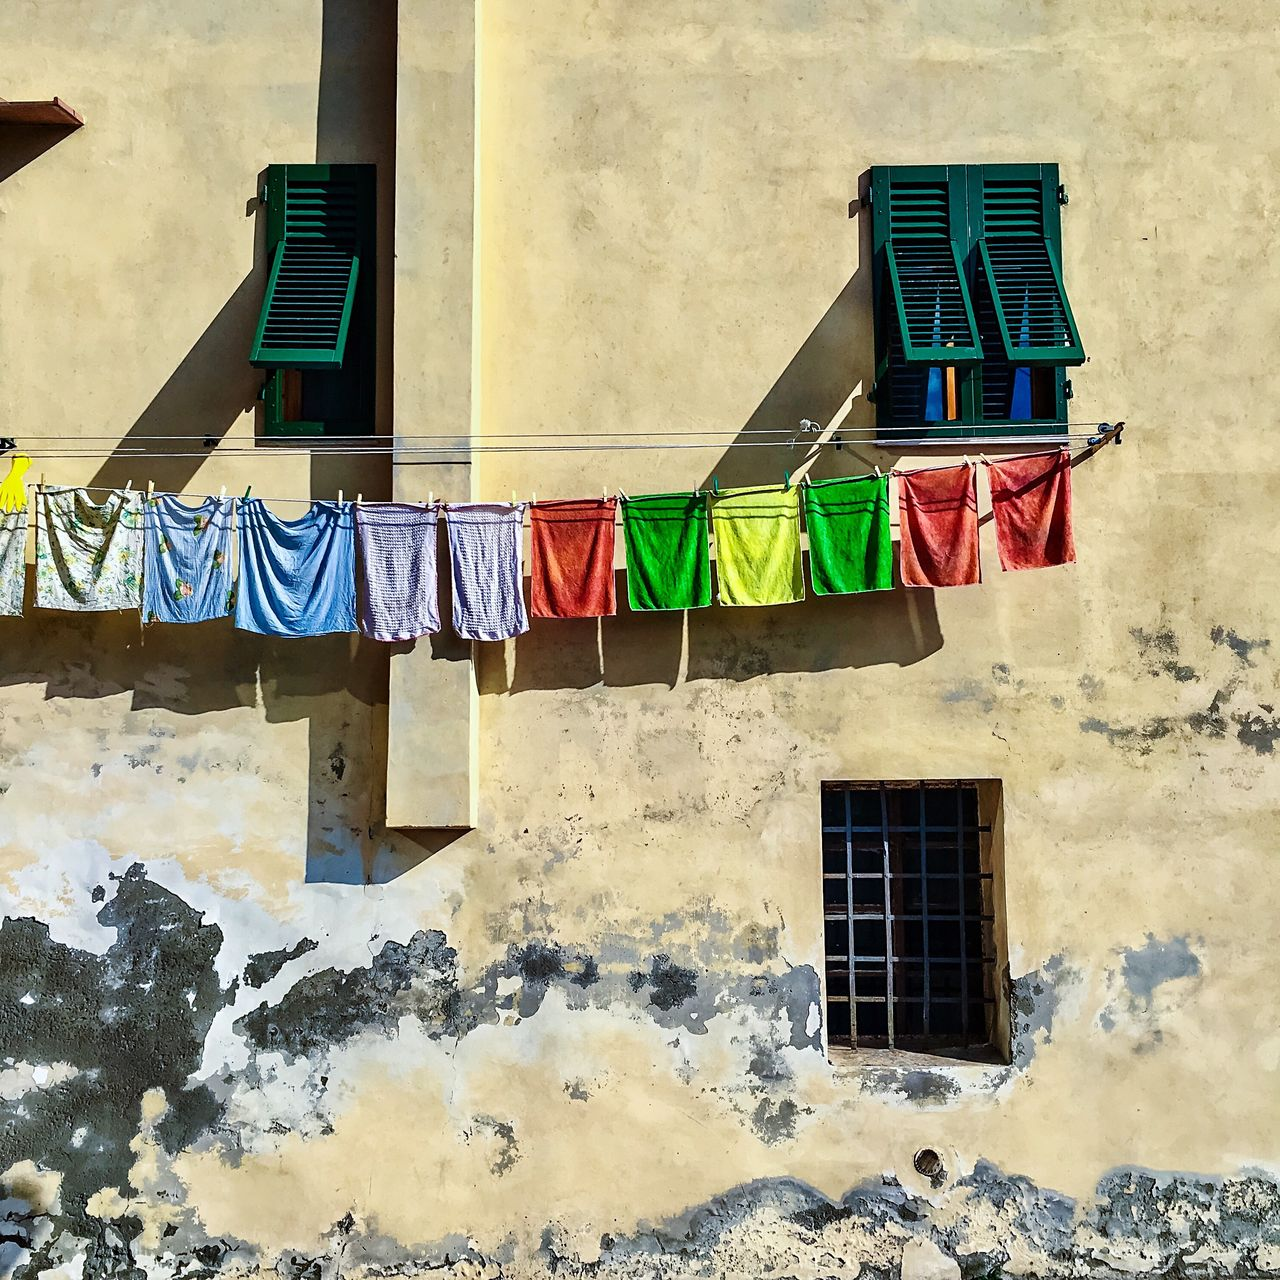 building exterior, architecture, built structure, building, window, flag, residential building, multi colored, clothesline, no people, day, laundry, outdoors, drying, hanging, low angle view